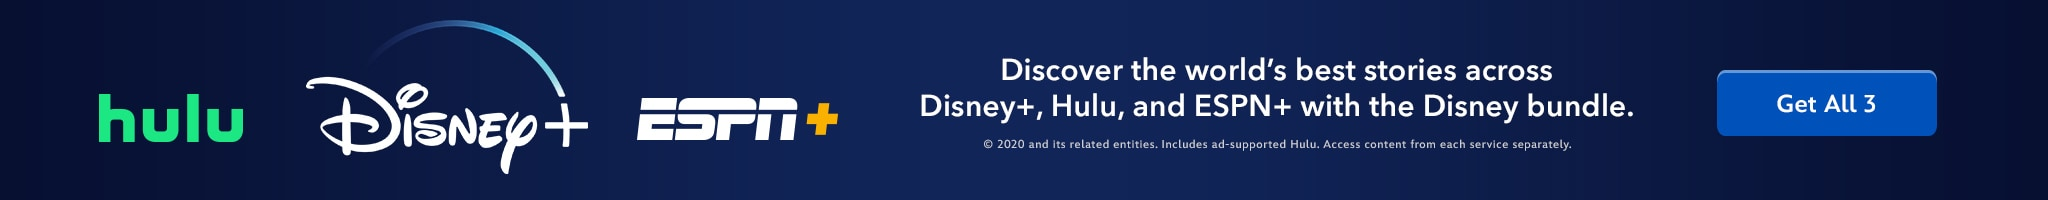 Disney+ | Hulu | ESPN+ | Discover the world's best stories across Disney+, Hulu, and ESPN+ with the Disney bundle. | Get all 3.